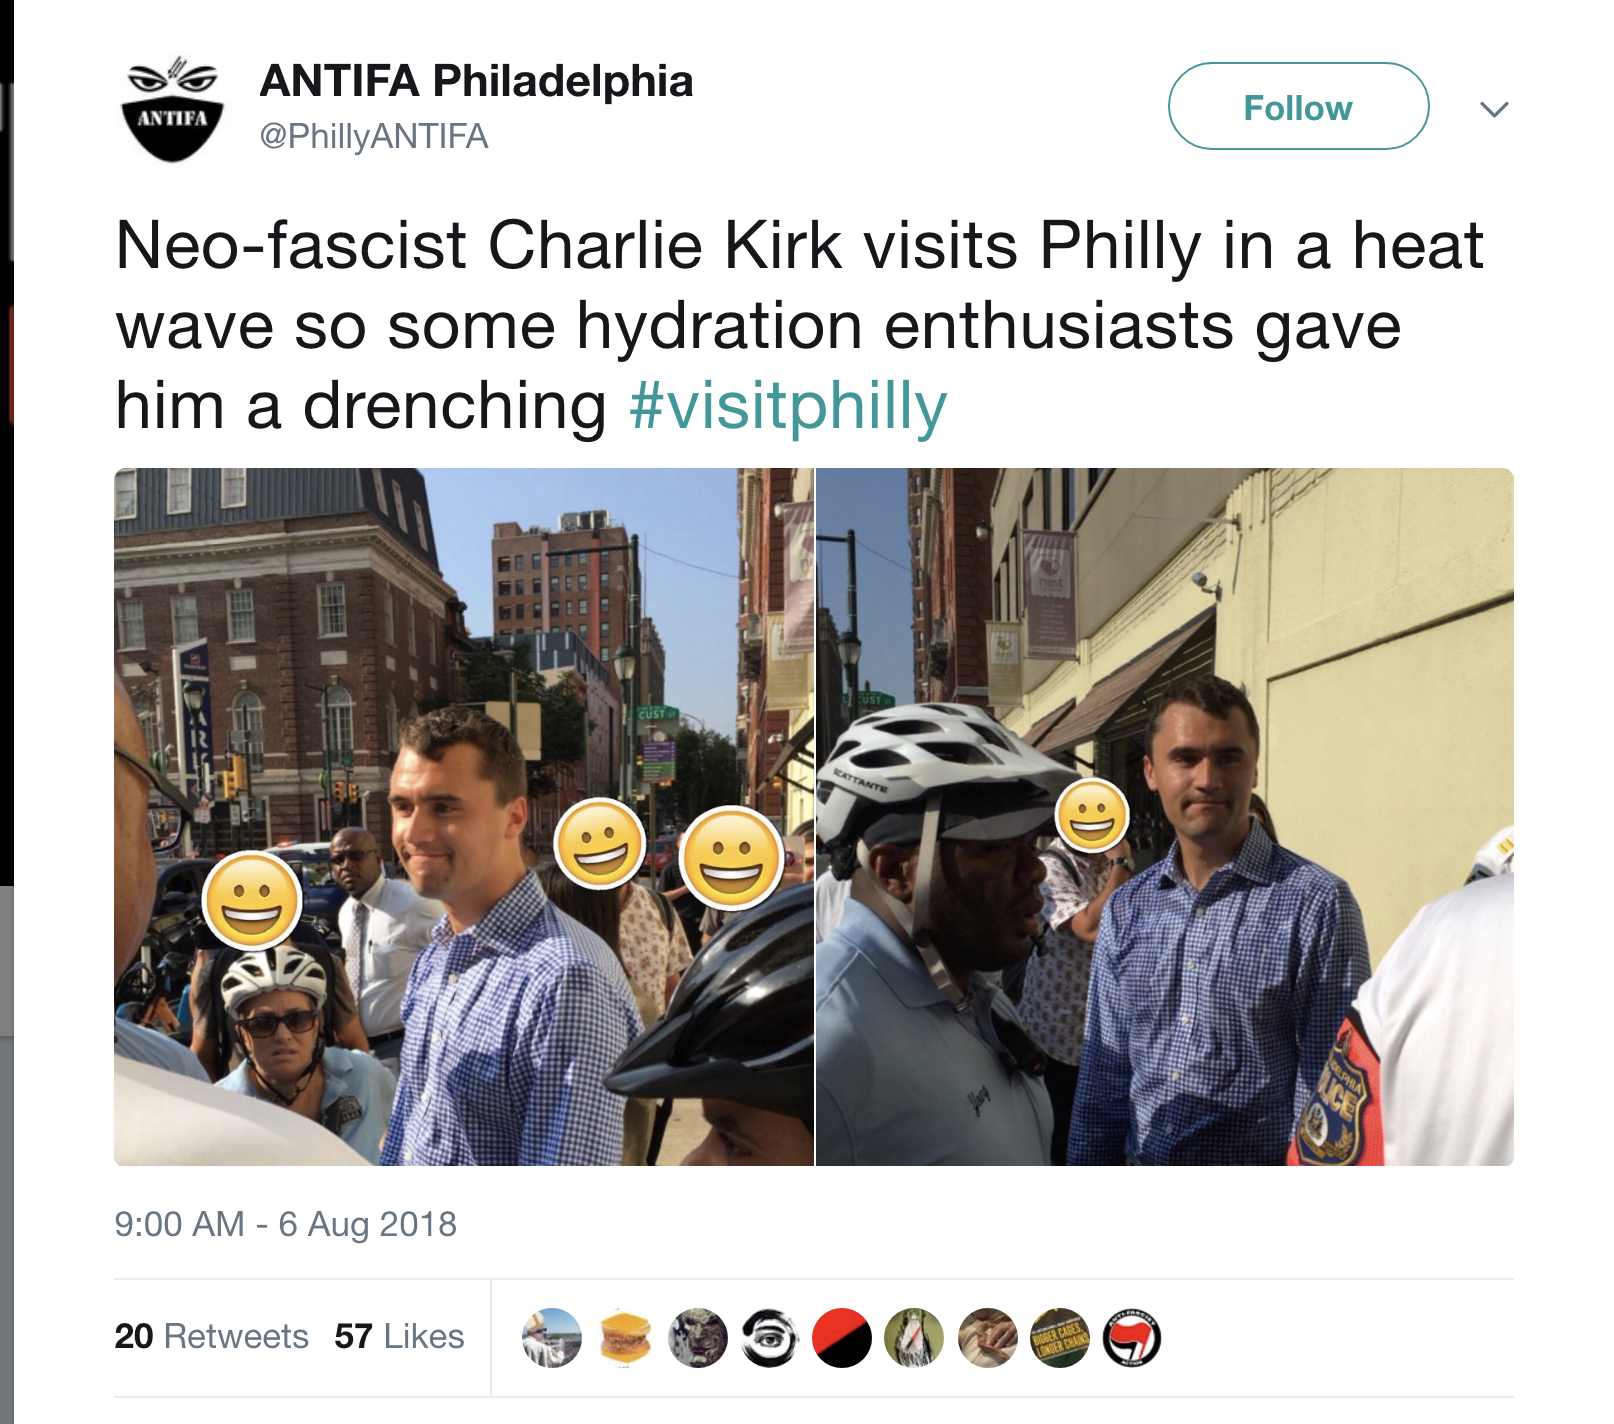 Screen-Shot-2018-08-06-at-11.43.45-AM Charlie Kirk & Candace Owens Found By Anti-Fascist Activists At Eatery - Mayhem Ensues Activism Politics Top Stories